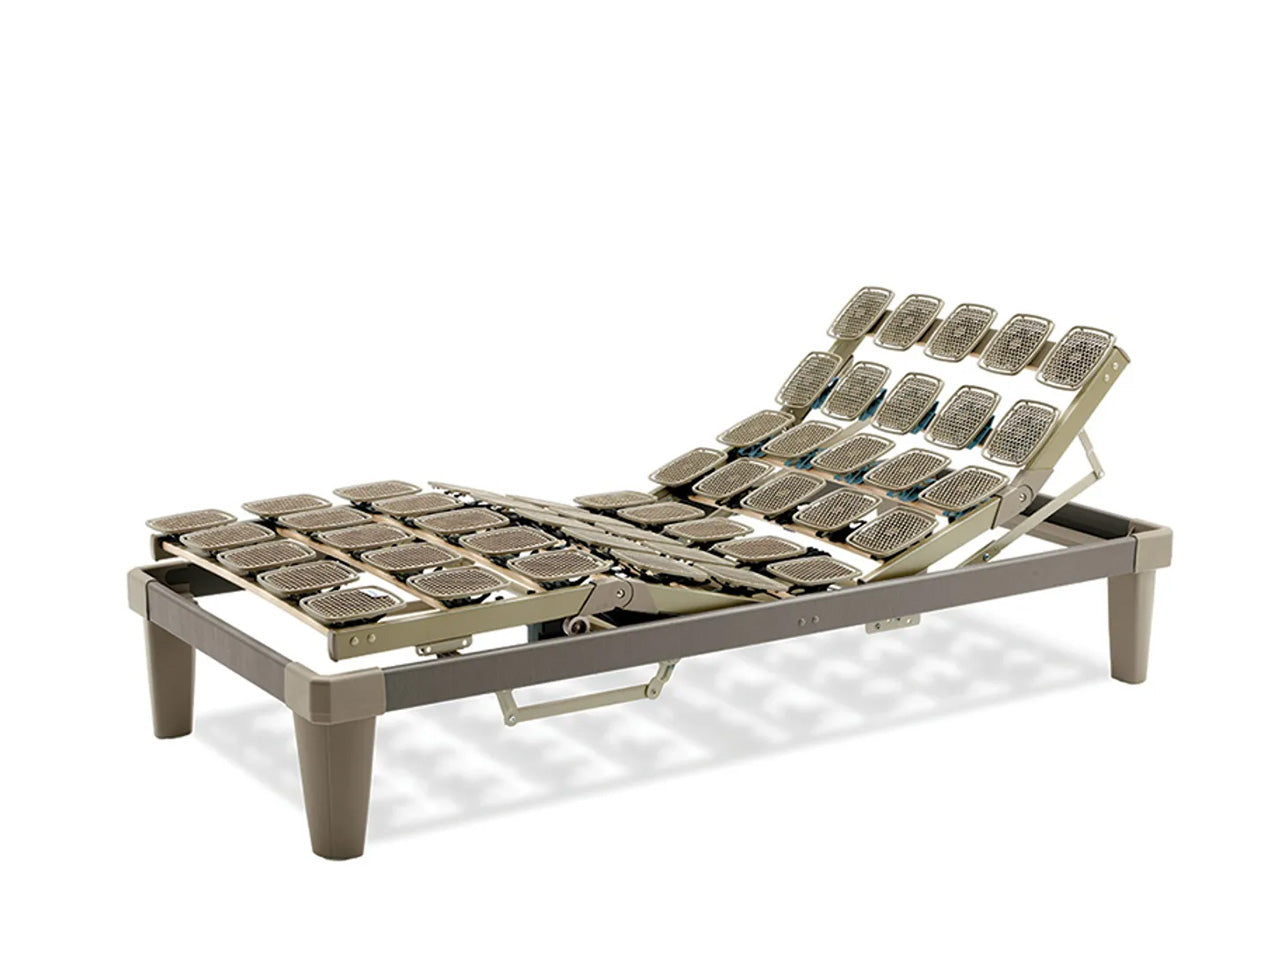 TEMPUR® Flex Adjustable Bed System